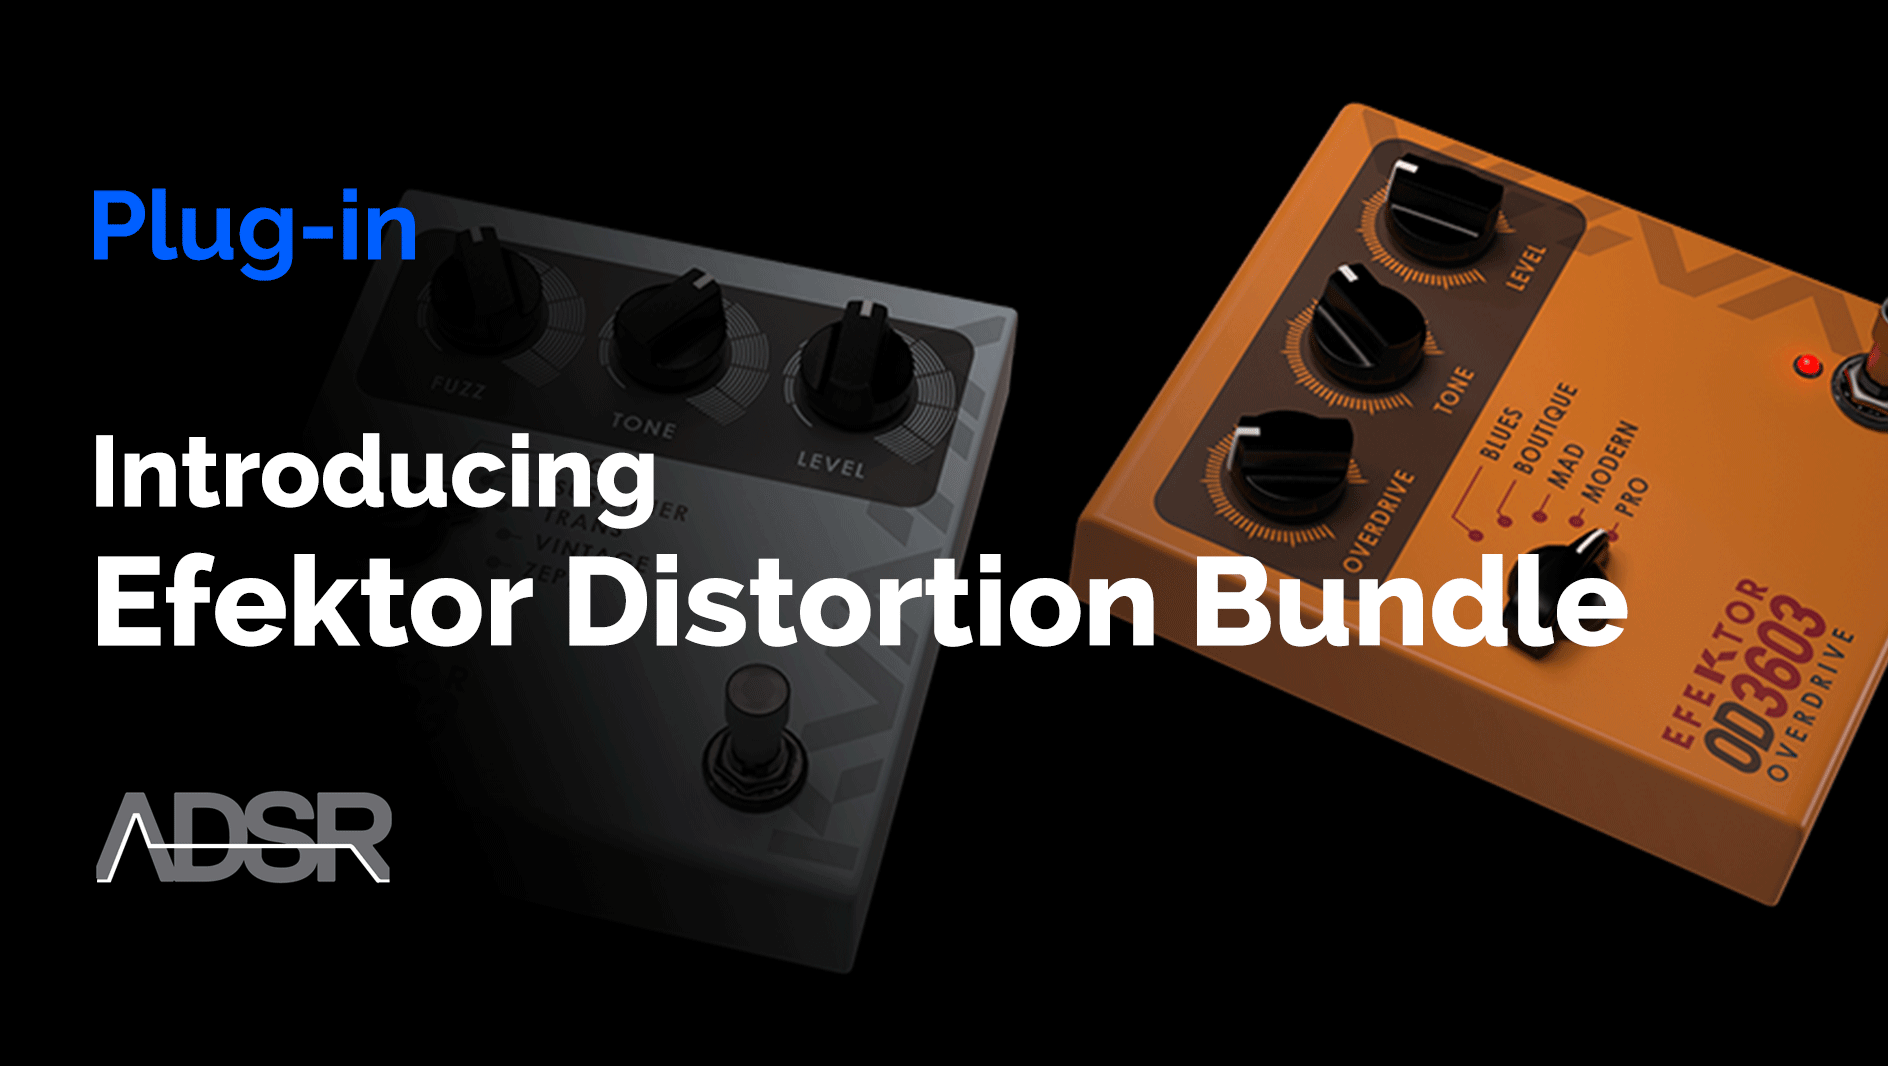 Video related to Efektor Distortion Bundle